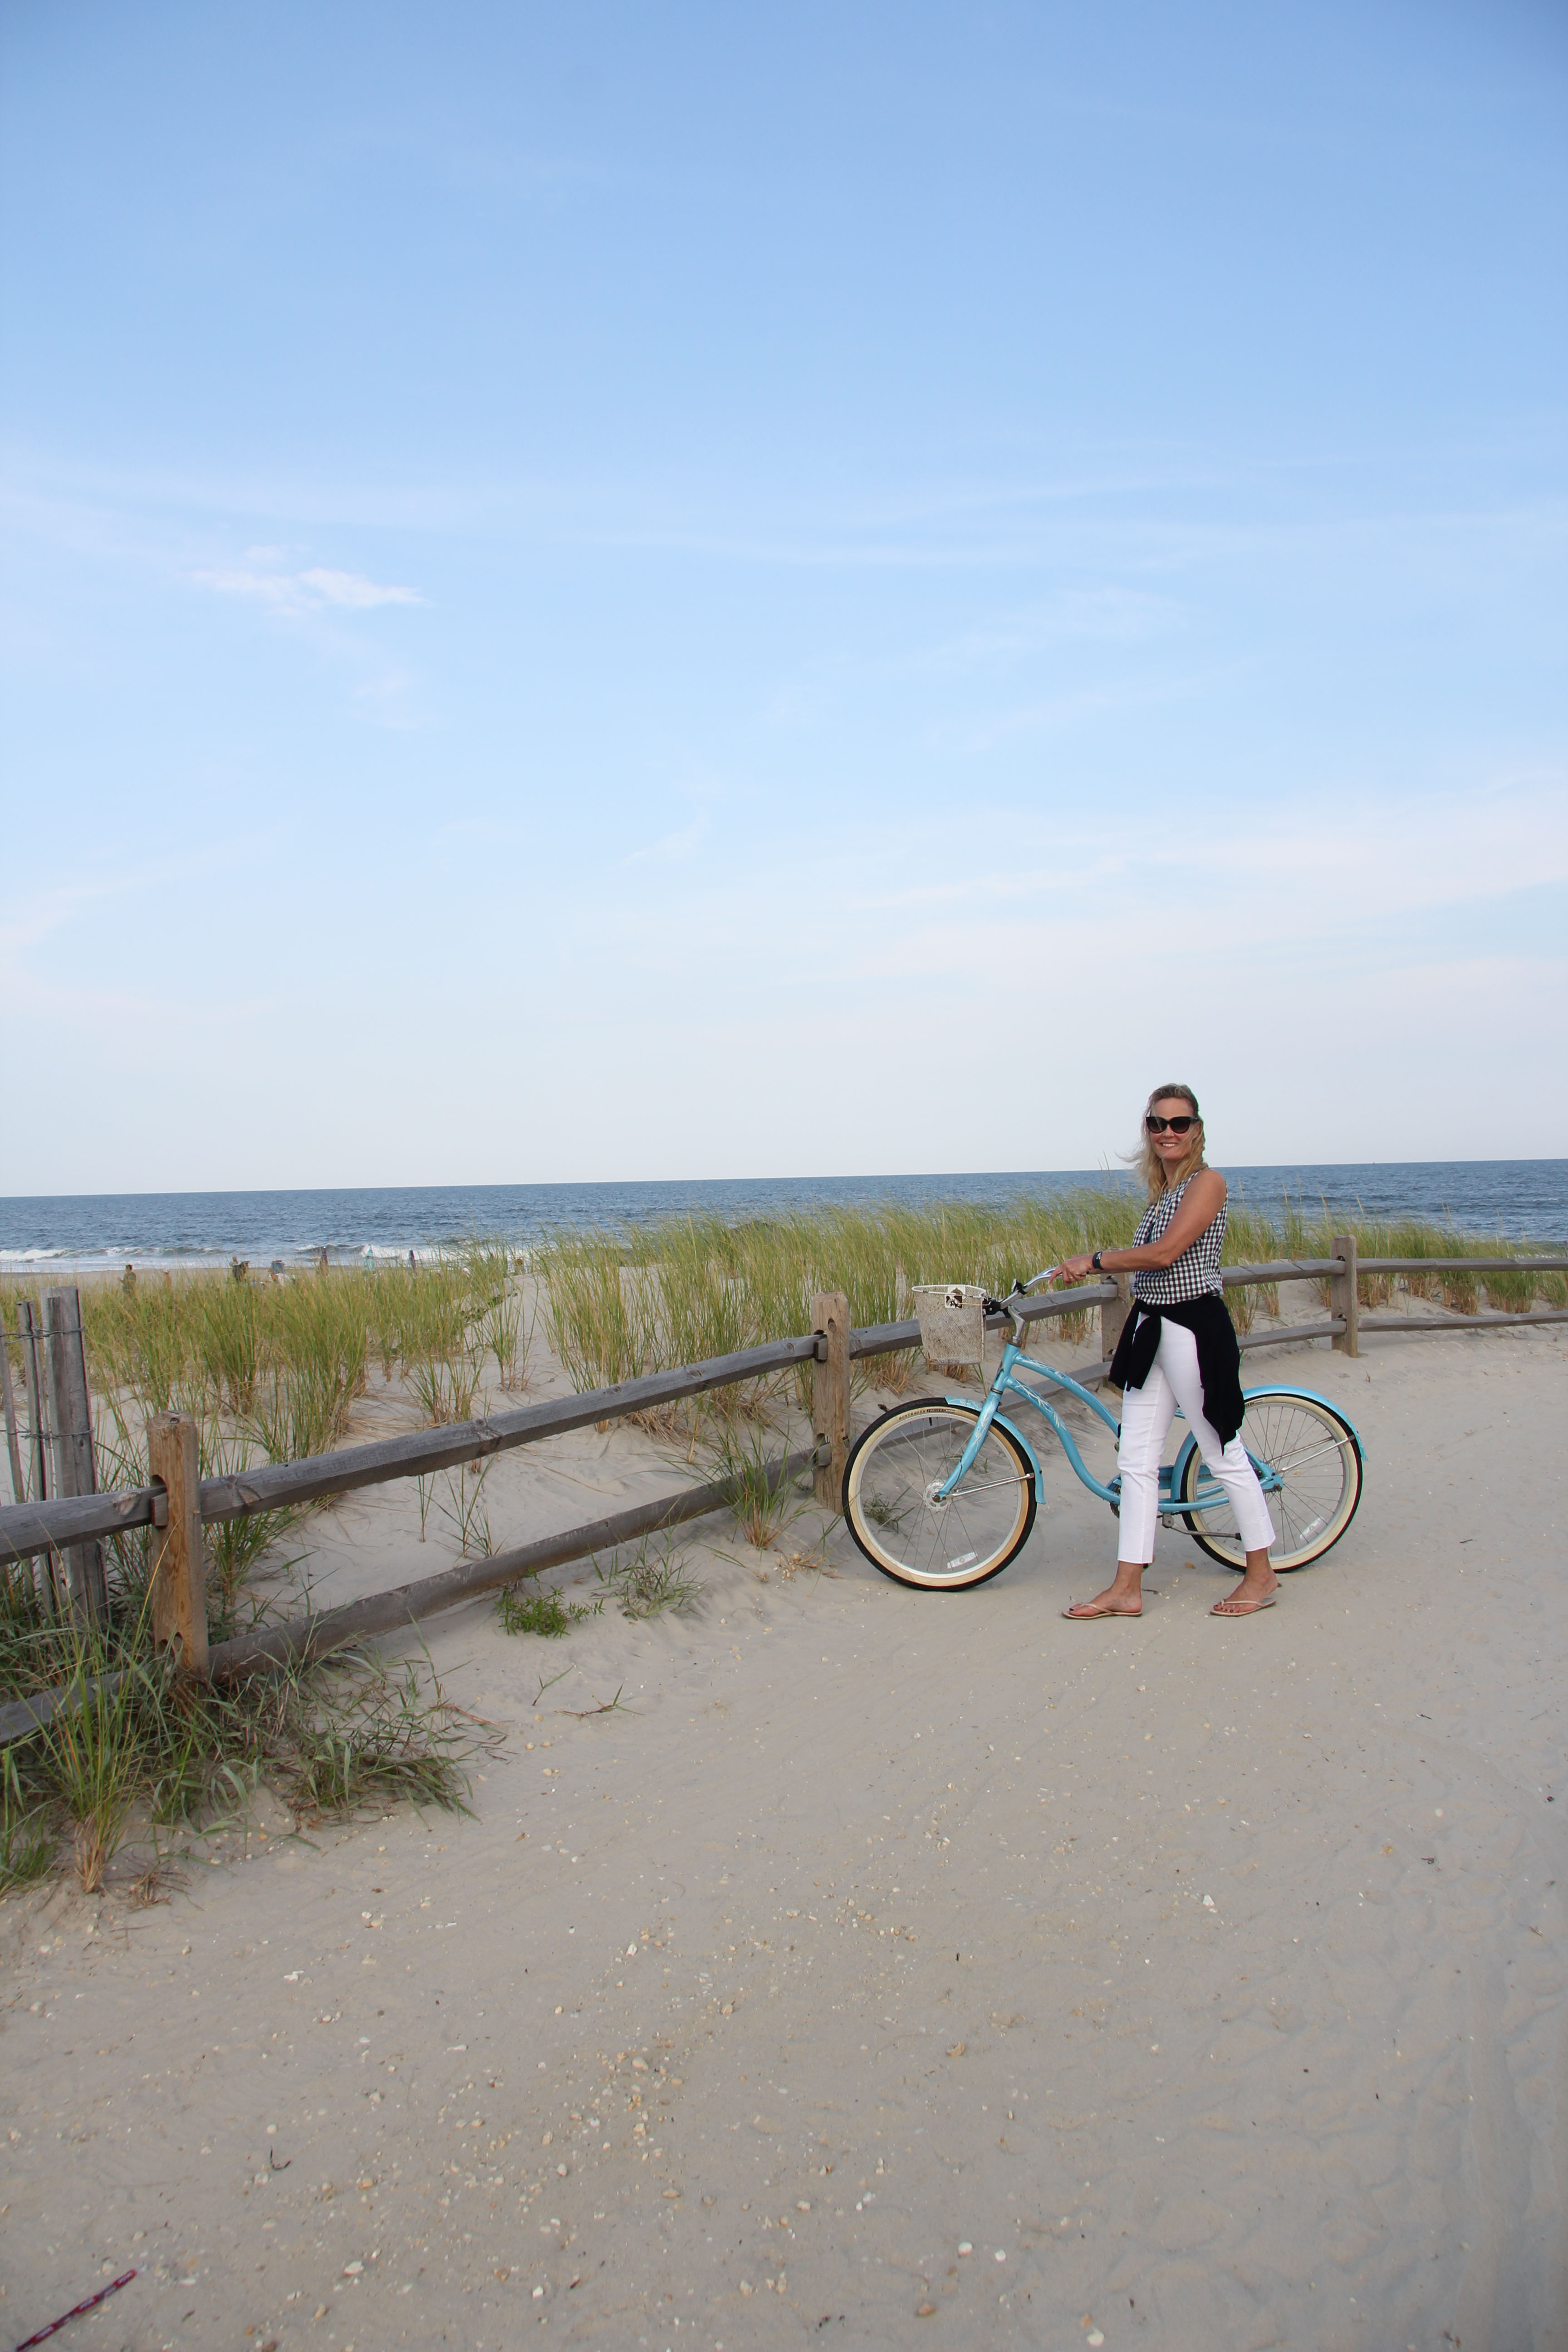 This week Ridgely Brode took her new frayed hem jeans for a spin at the beach and share them on her blog, Ridgely's Radar.